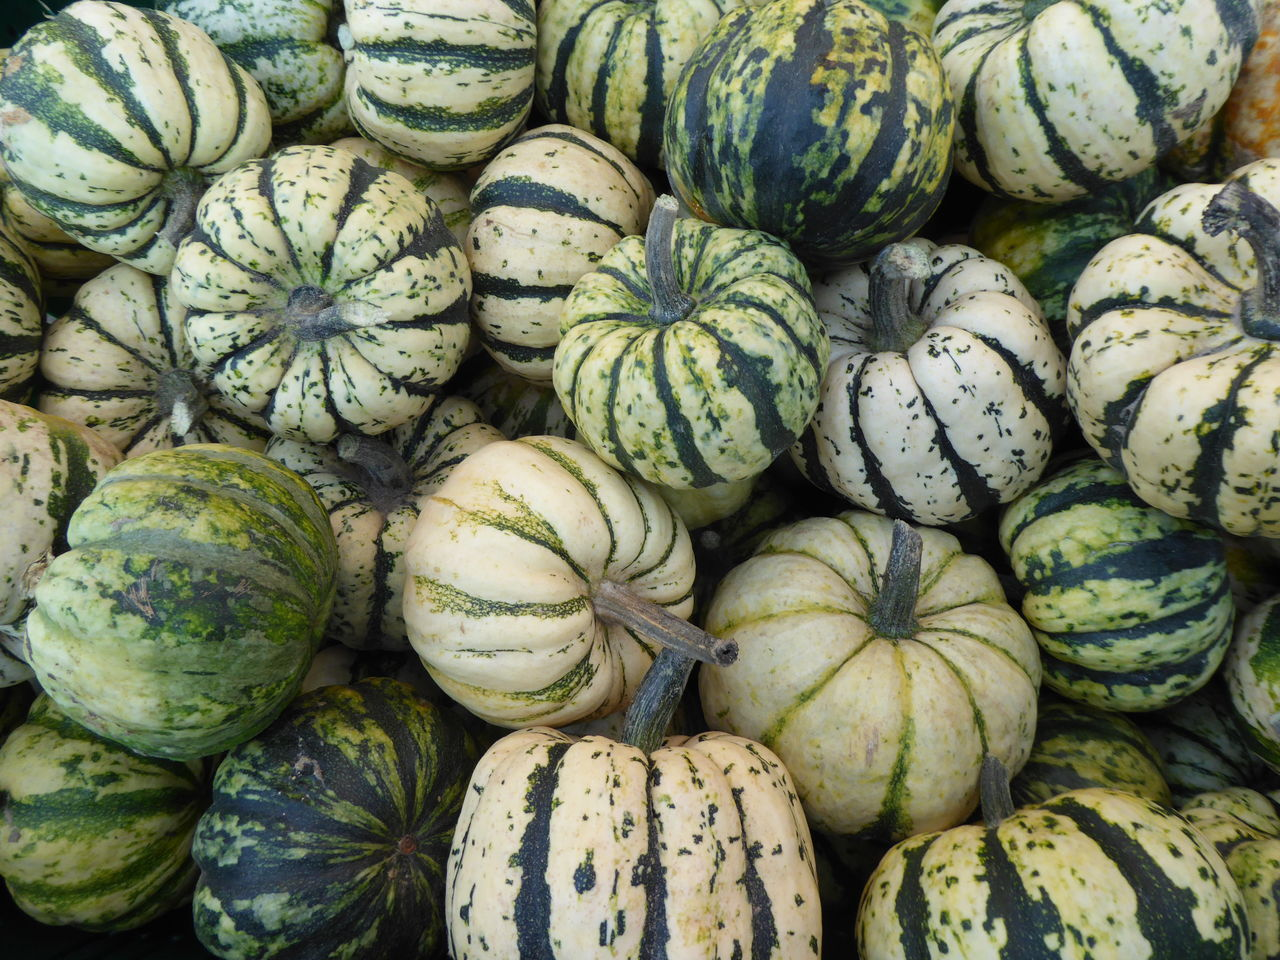 food and drink, food, freshness, healthy eating, wellbeing, large group of objects, full frame, abundance, backgrounds, for sale, no people, market, pumpkin, vegetable, day, close-up, retail, green color, high angle view, organic, outdoors, melon, ripe